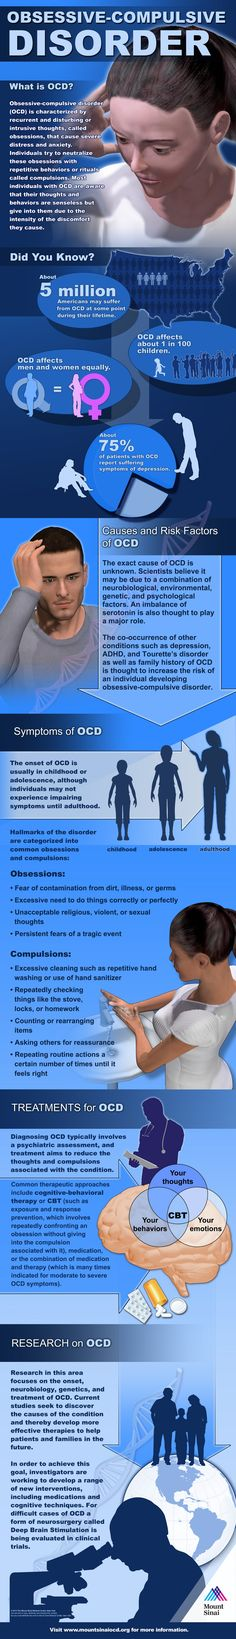 Obsessive Compulsive Disorder (OCD) Infographic - Approximately five million Americans may suffer from obsessive-compulsive disorder (OCD) at some point in their lives. Learn about common obsessions and compulsions as well as the therapies used to treat t Mental Health Issues, Mental Health Awareness, Obsessive Compulsive Disorder, Come Undone, Mental Disorders, Social Work, Art Therapy, Health And Wellness, Health Tips